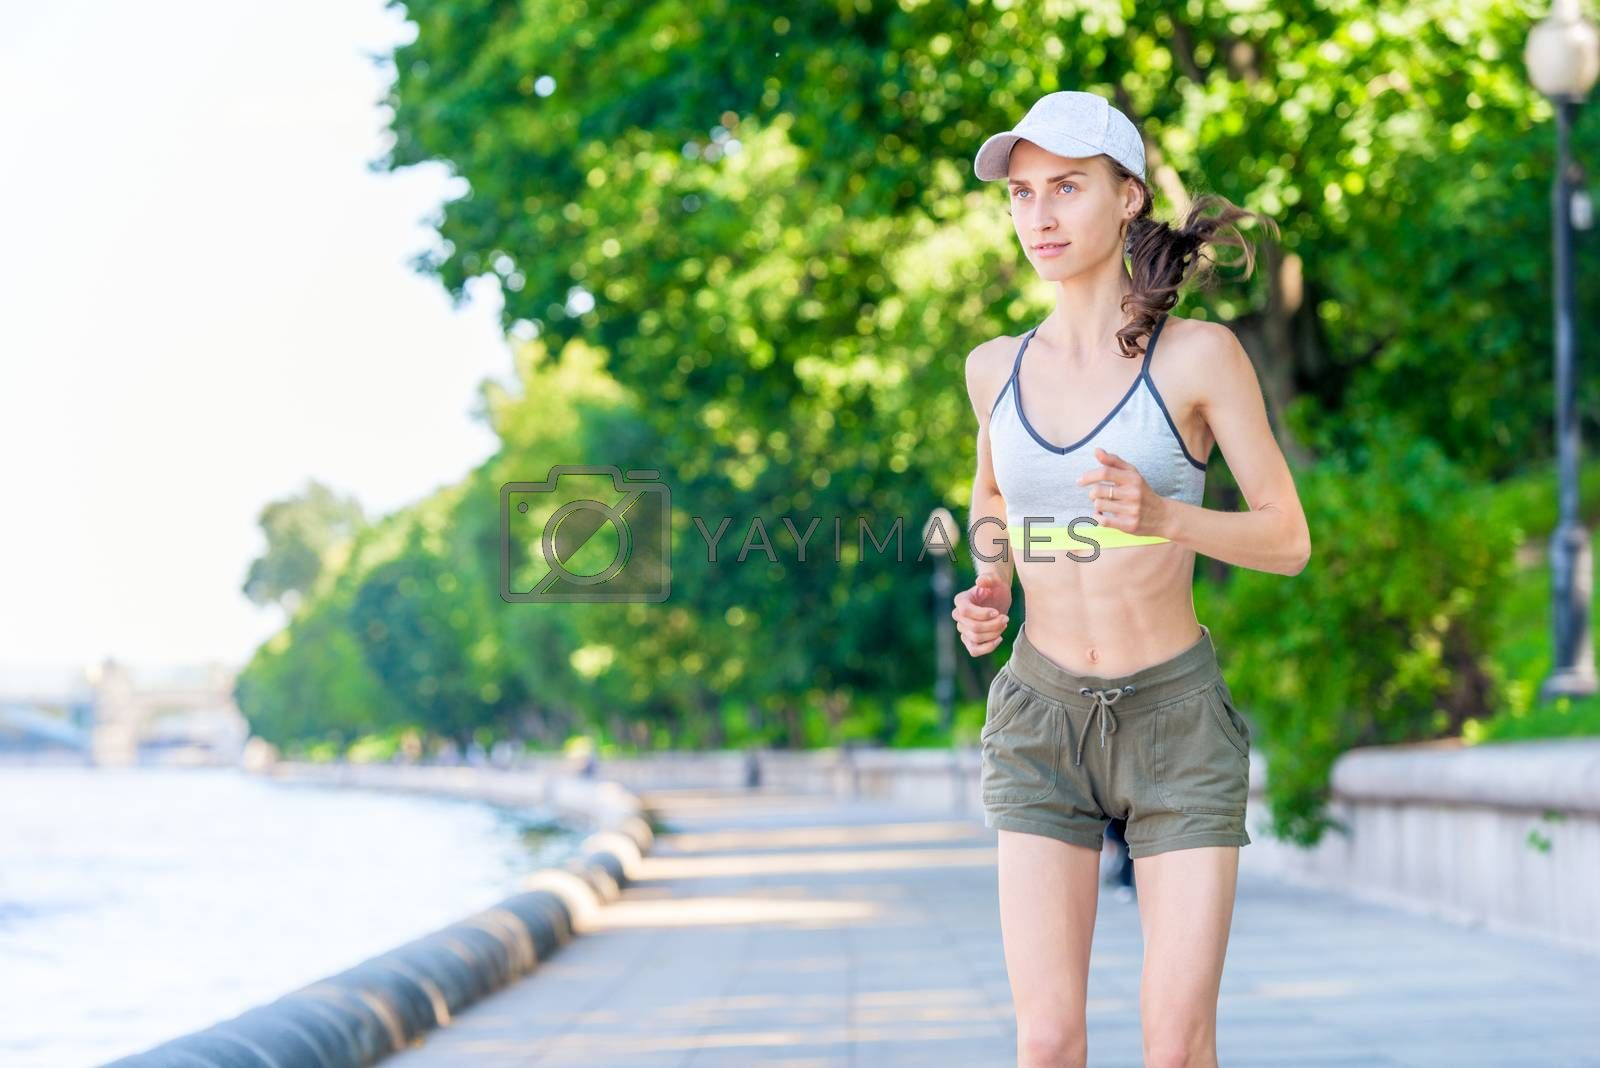 portrait of a running sports woman on the embankment in a city p by Labunskiy K.